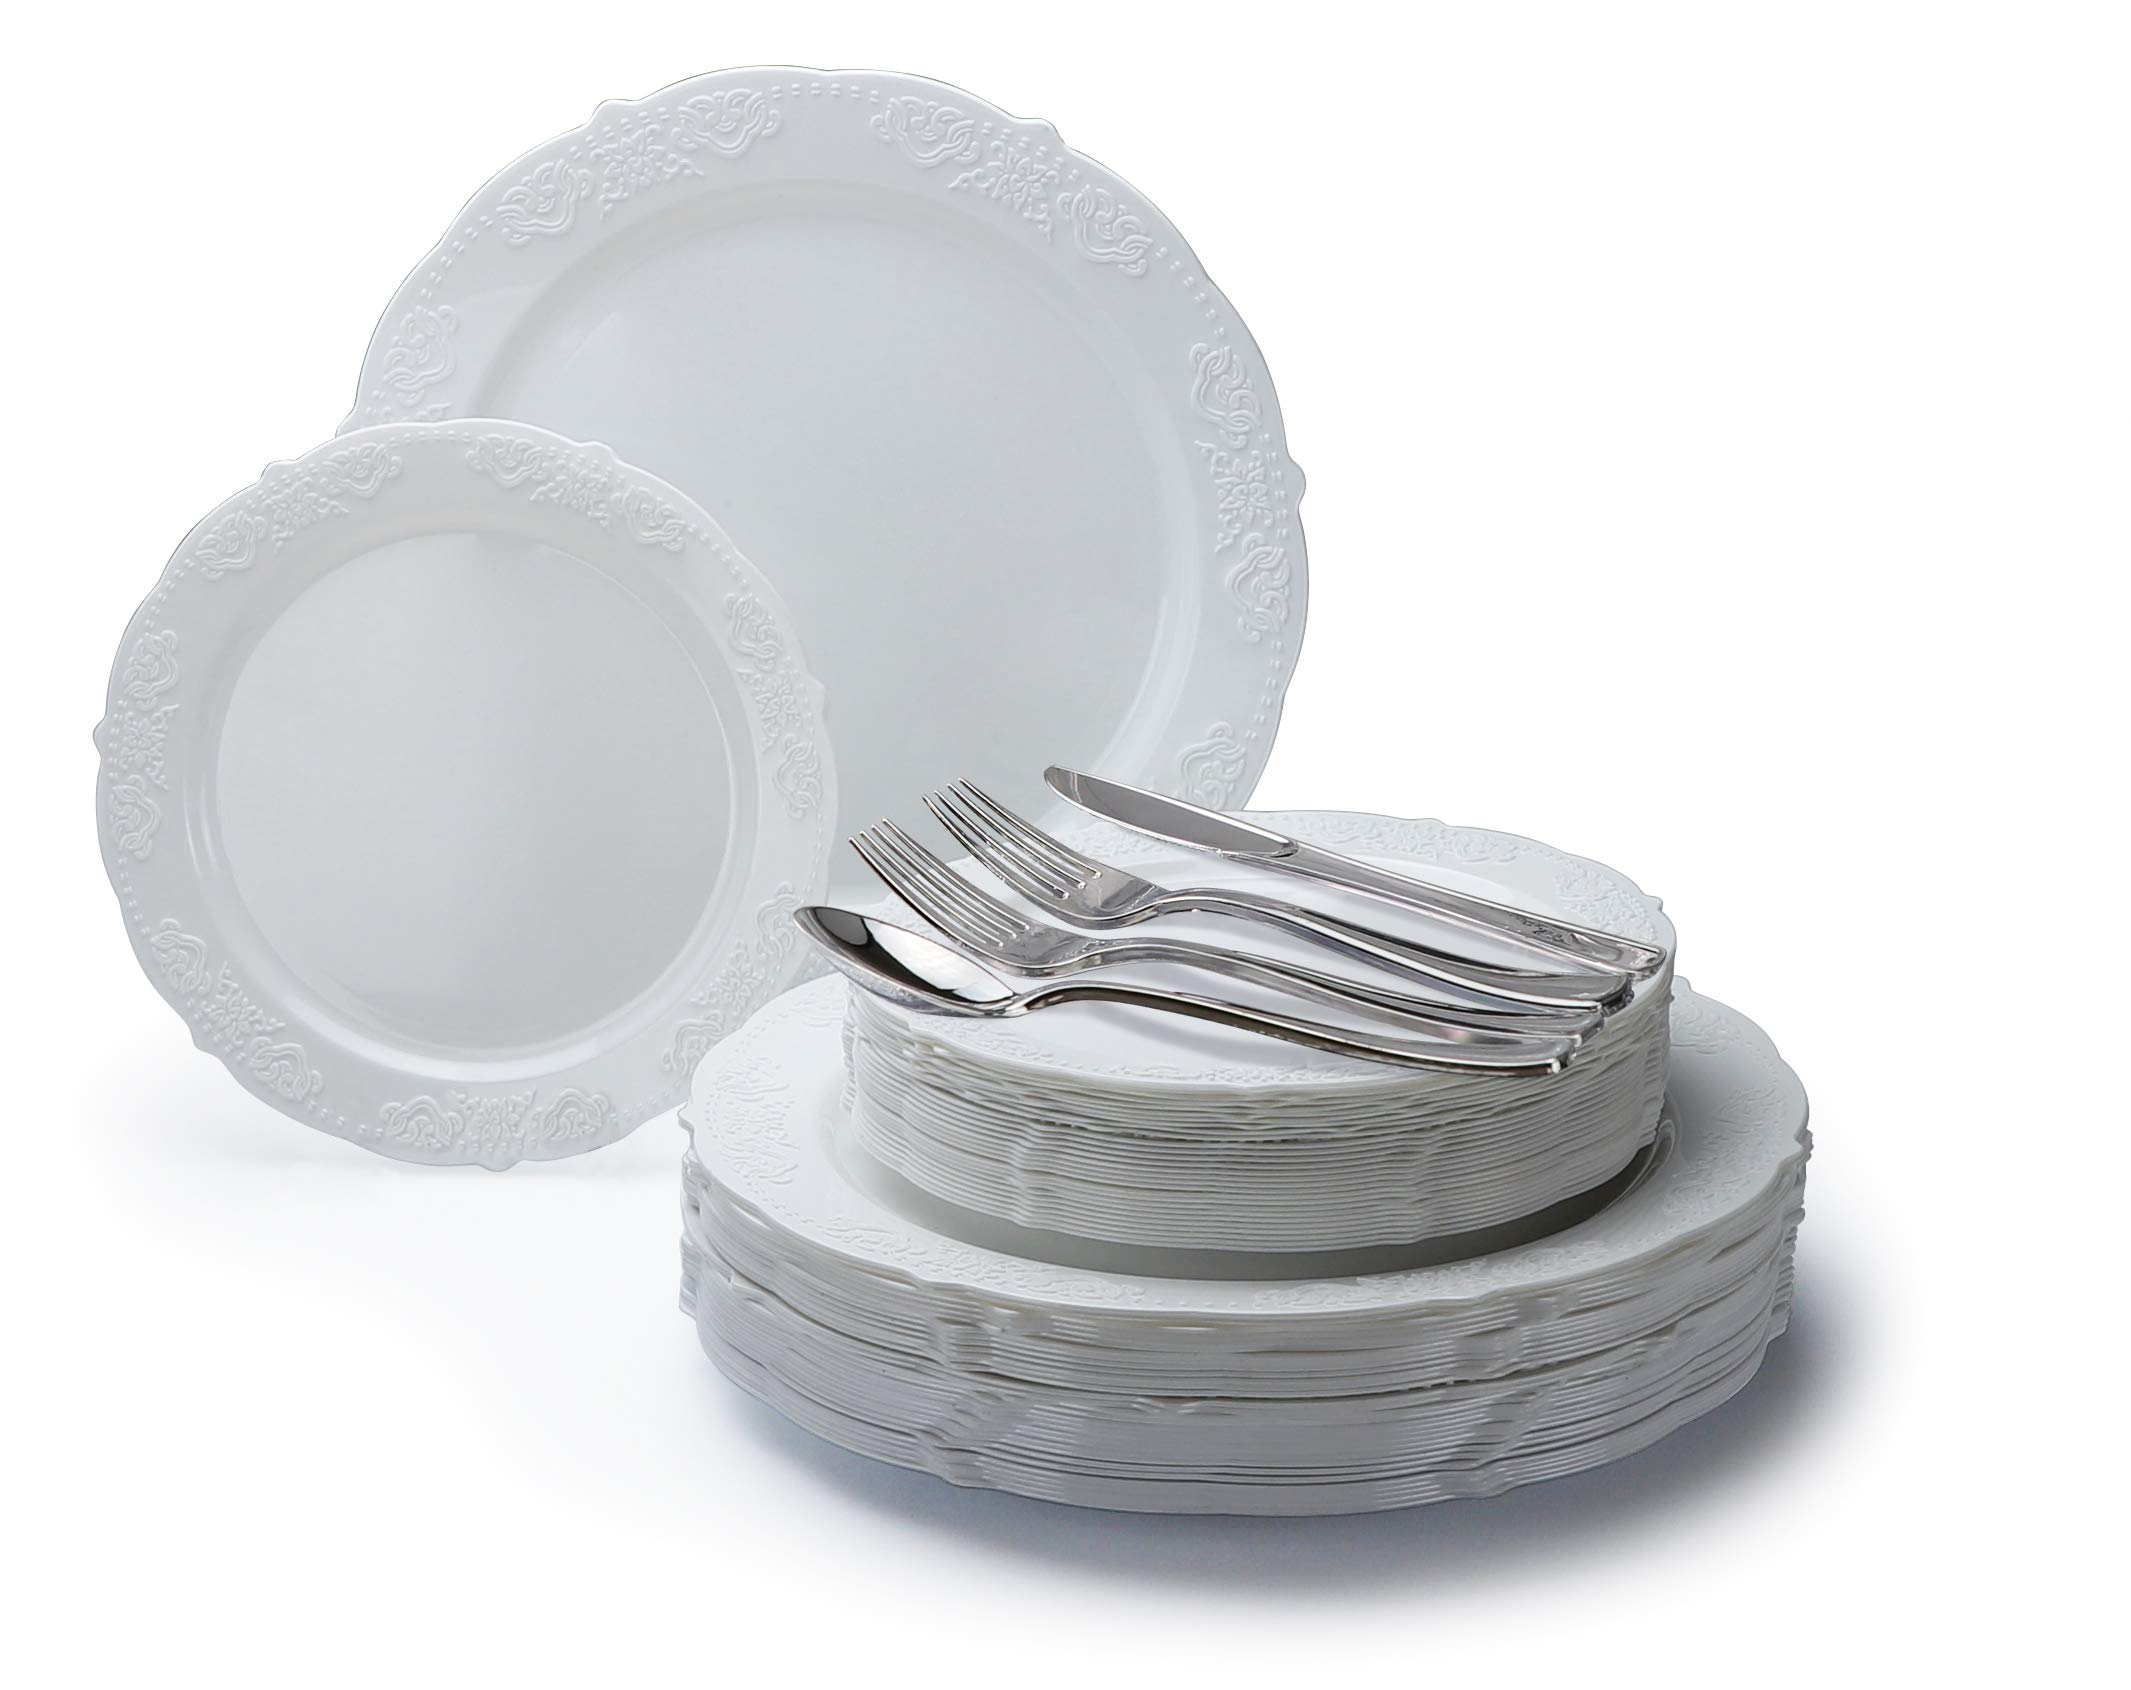 '' OCCASIONS'' 360 PCS / 60 GUEST Wedding Disposable Plastic Plate and Silverware Combo Set (Portofino White)